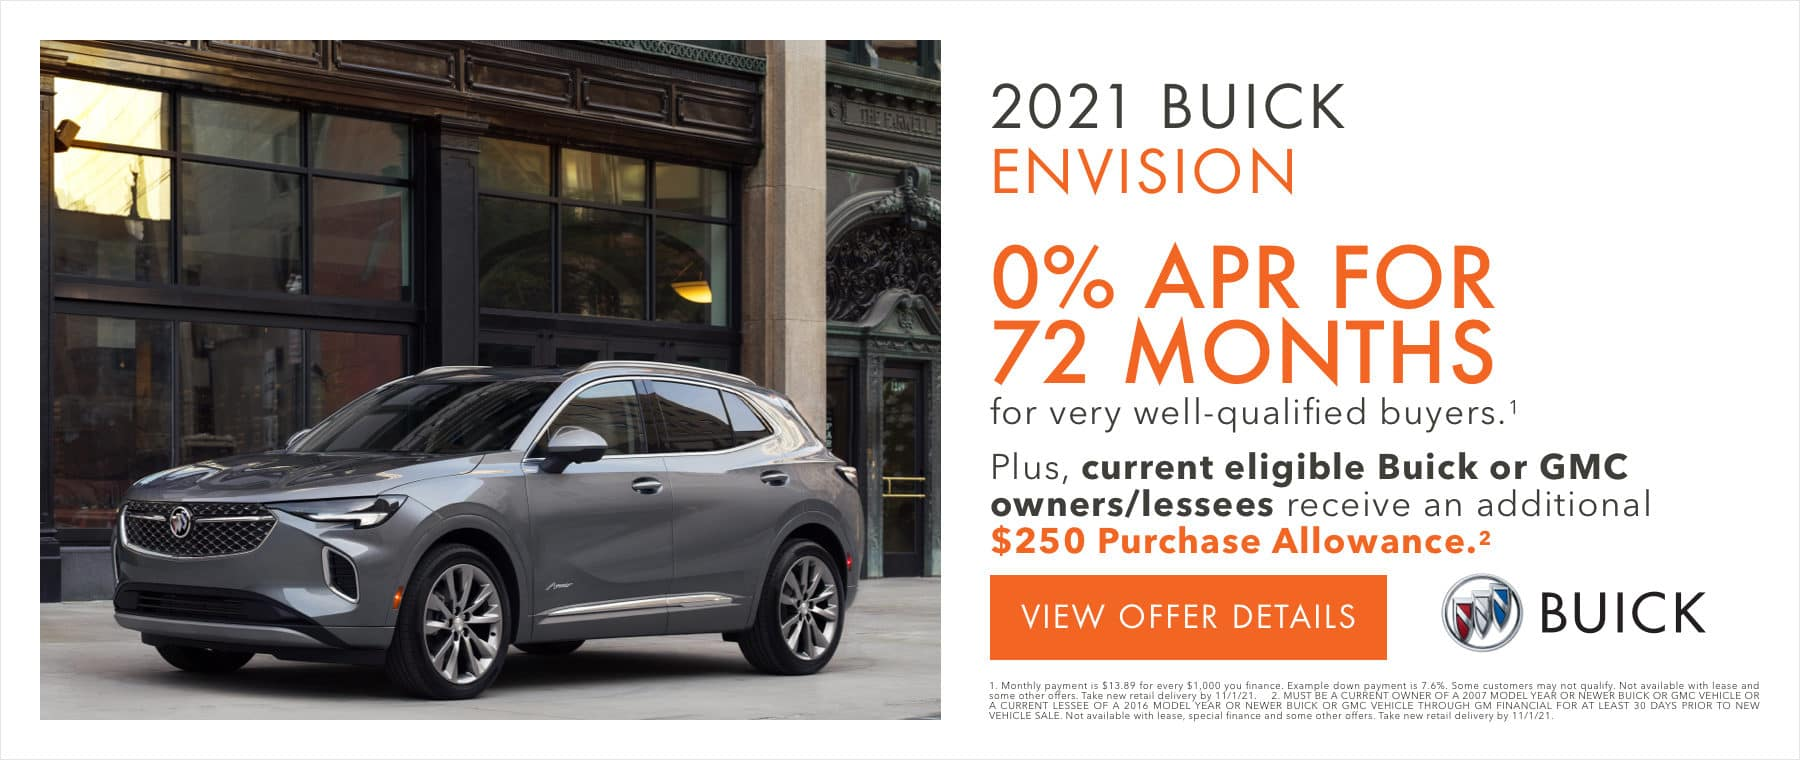 2021 Buick Envision 0% APR for 72 months for well qualified buyers. Plus, current eligible Buick or GMC owners/lessees receive an additional $250 purchase allowance